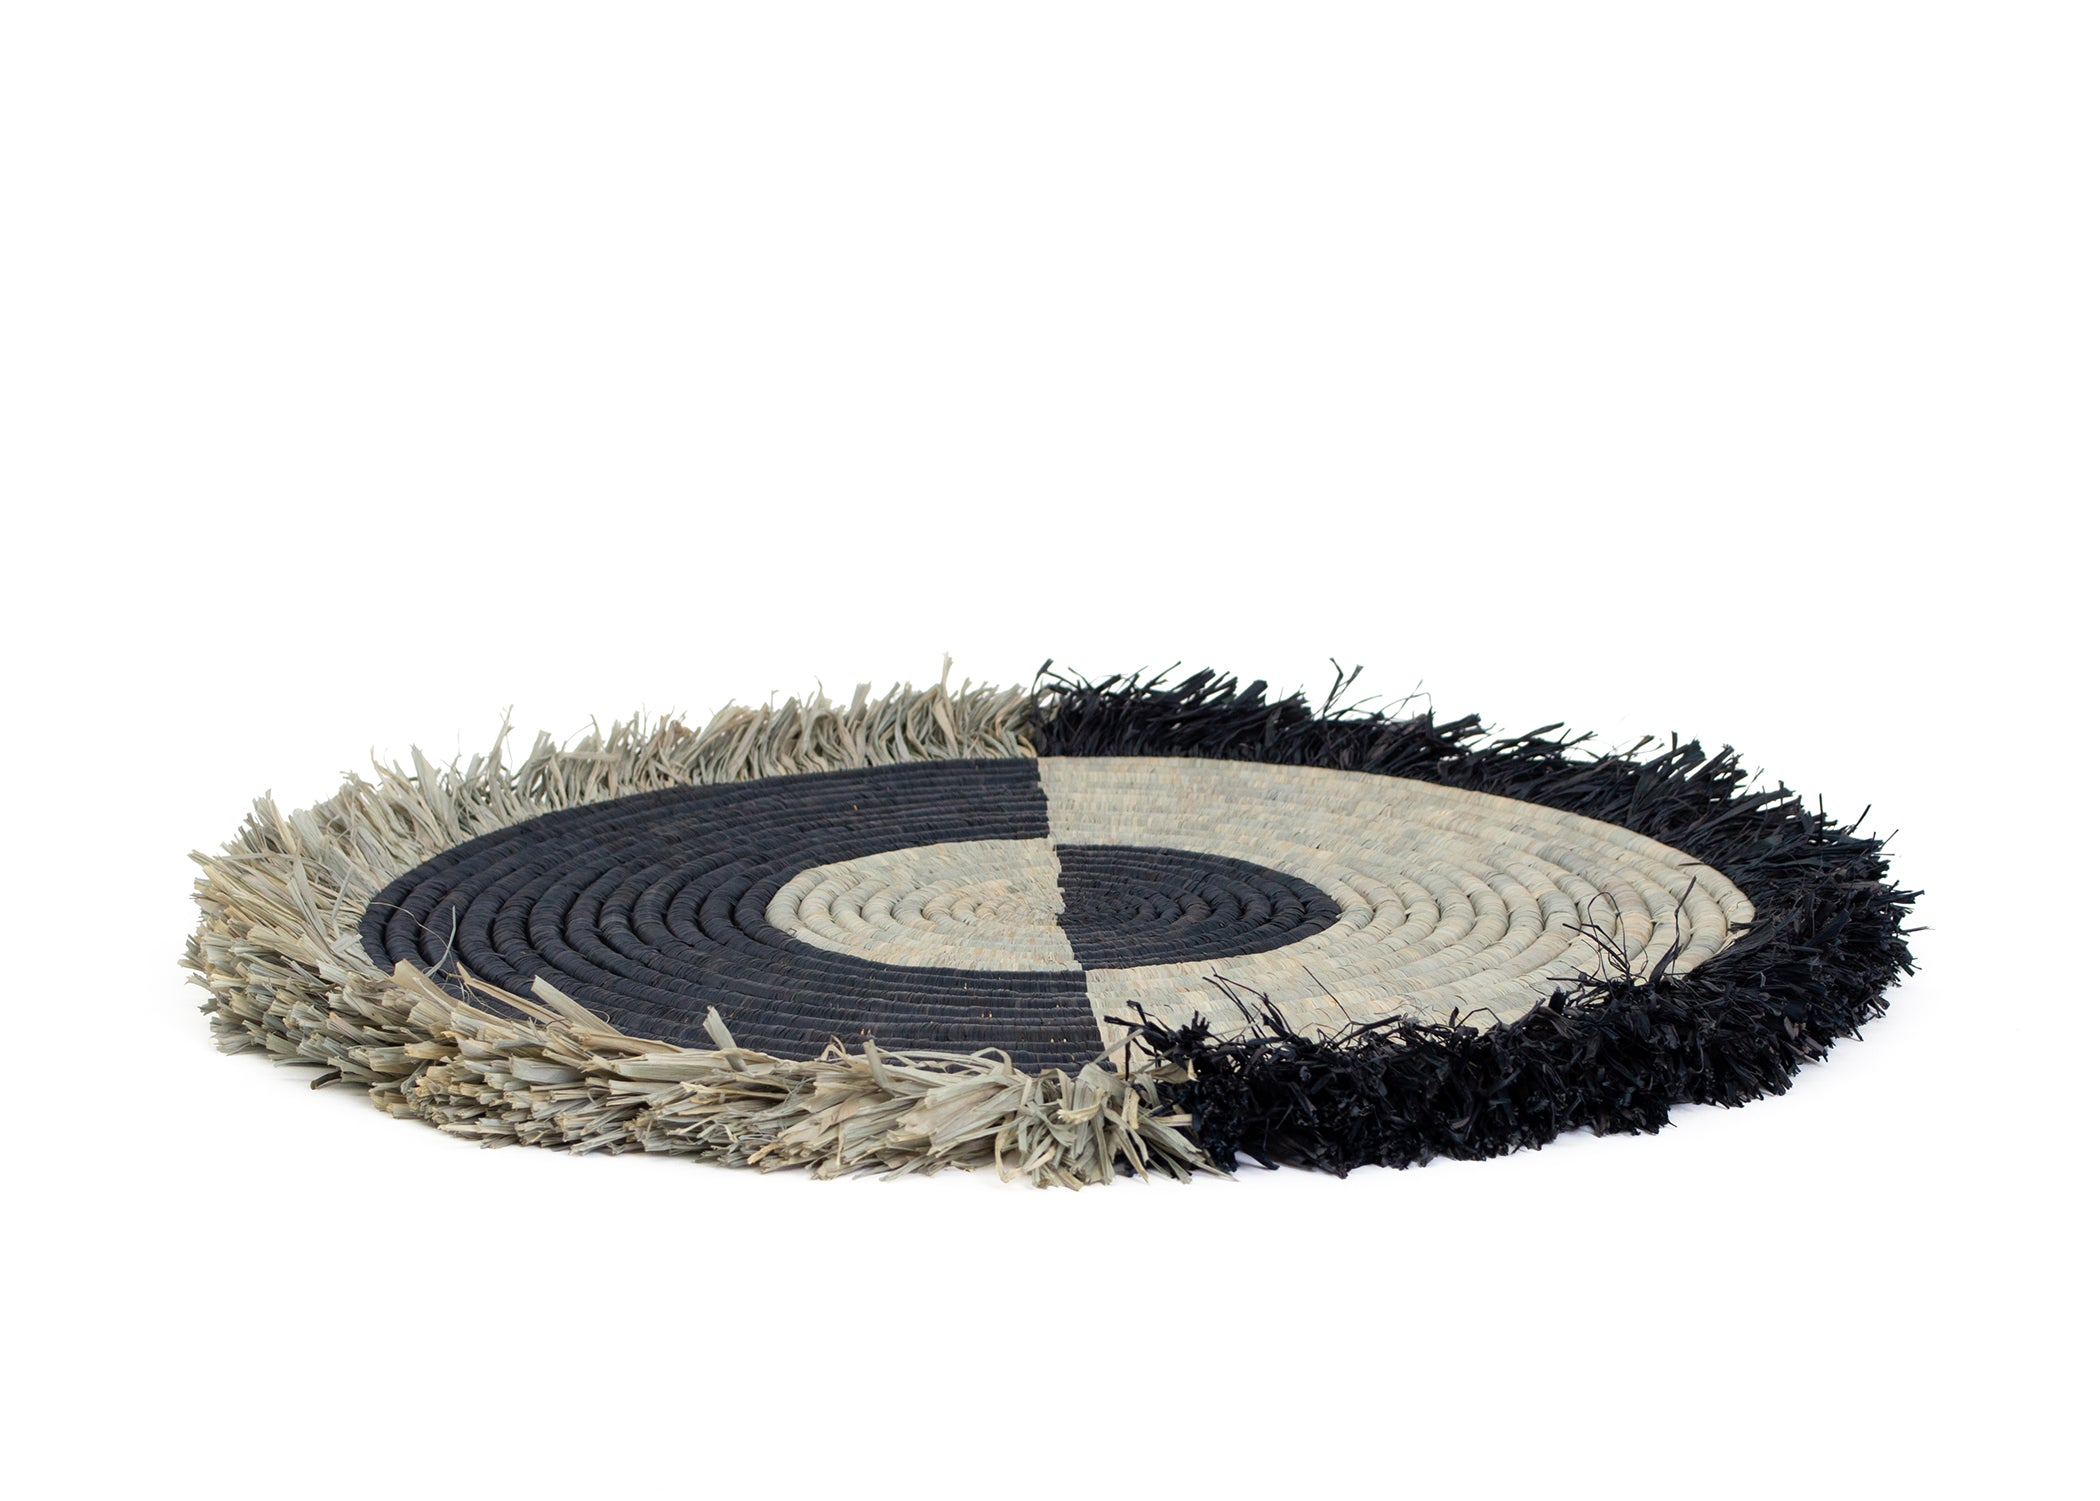 Carbon Fringed Disc II - KAZI - Artisan made high quality home decor and wall art